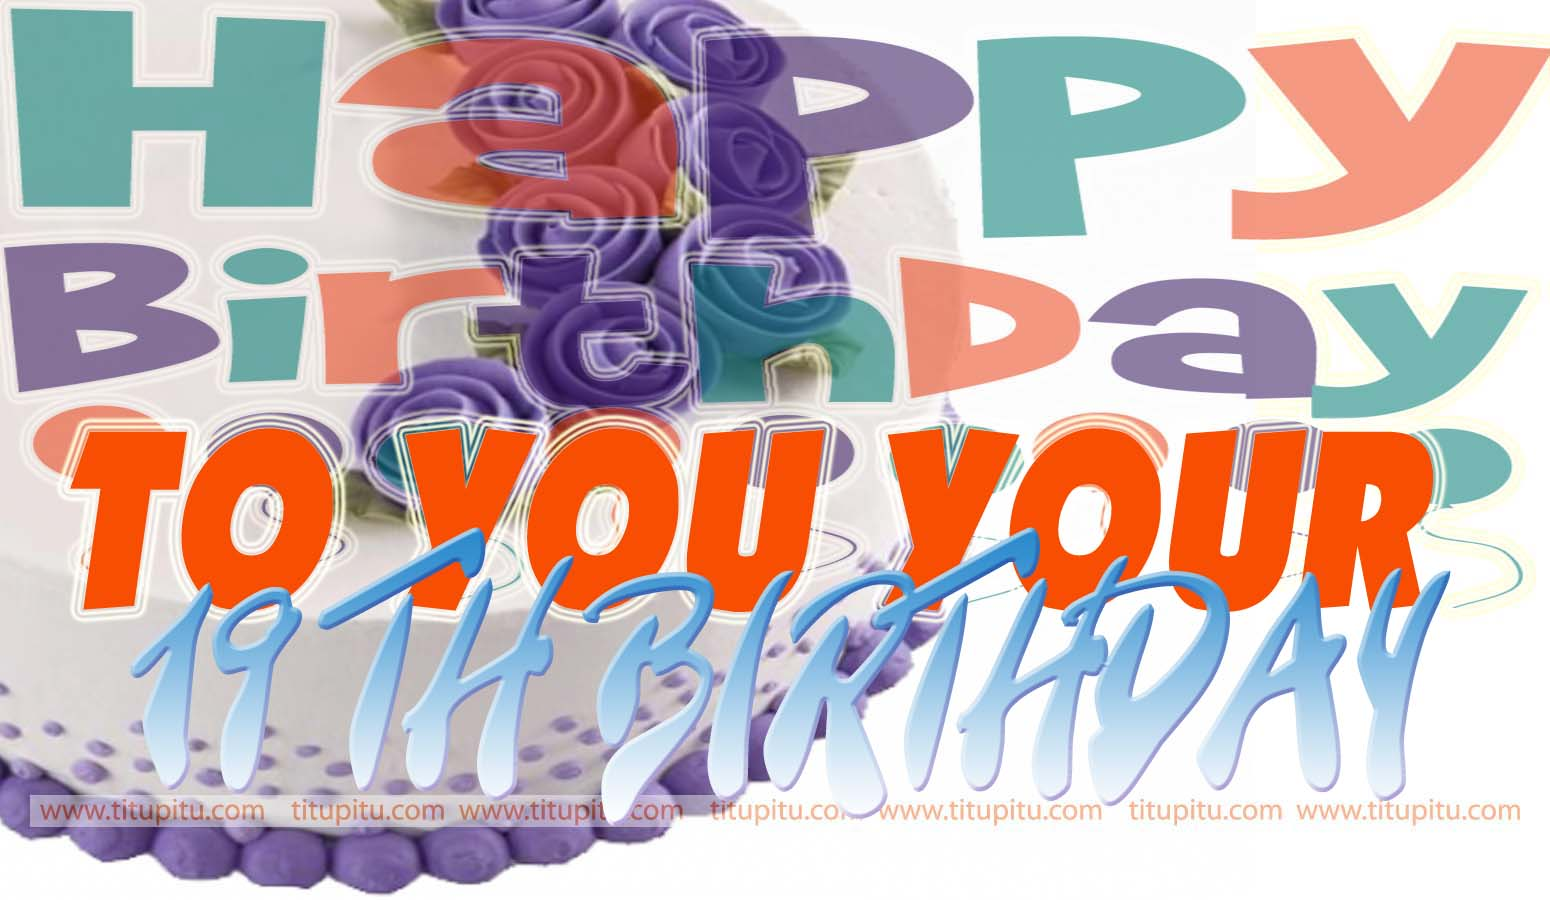 19th birthday wishes message and wallpaper for everyone